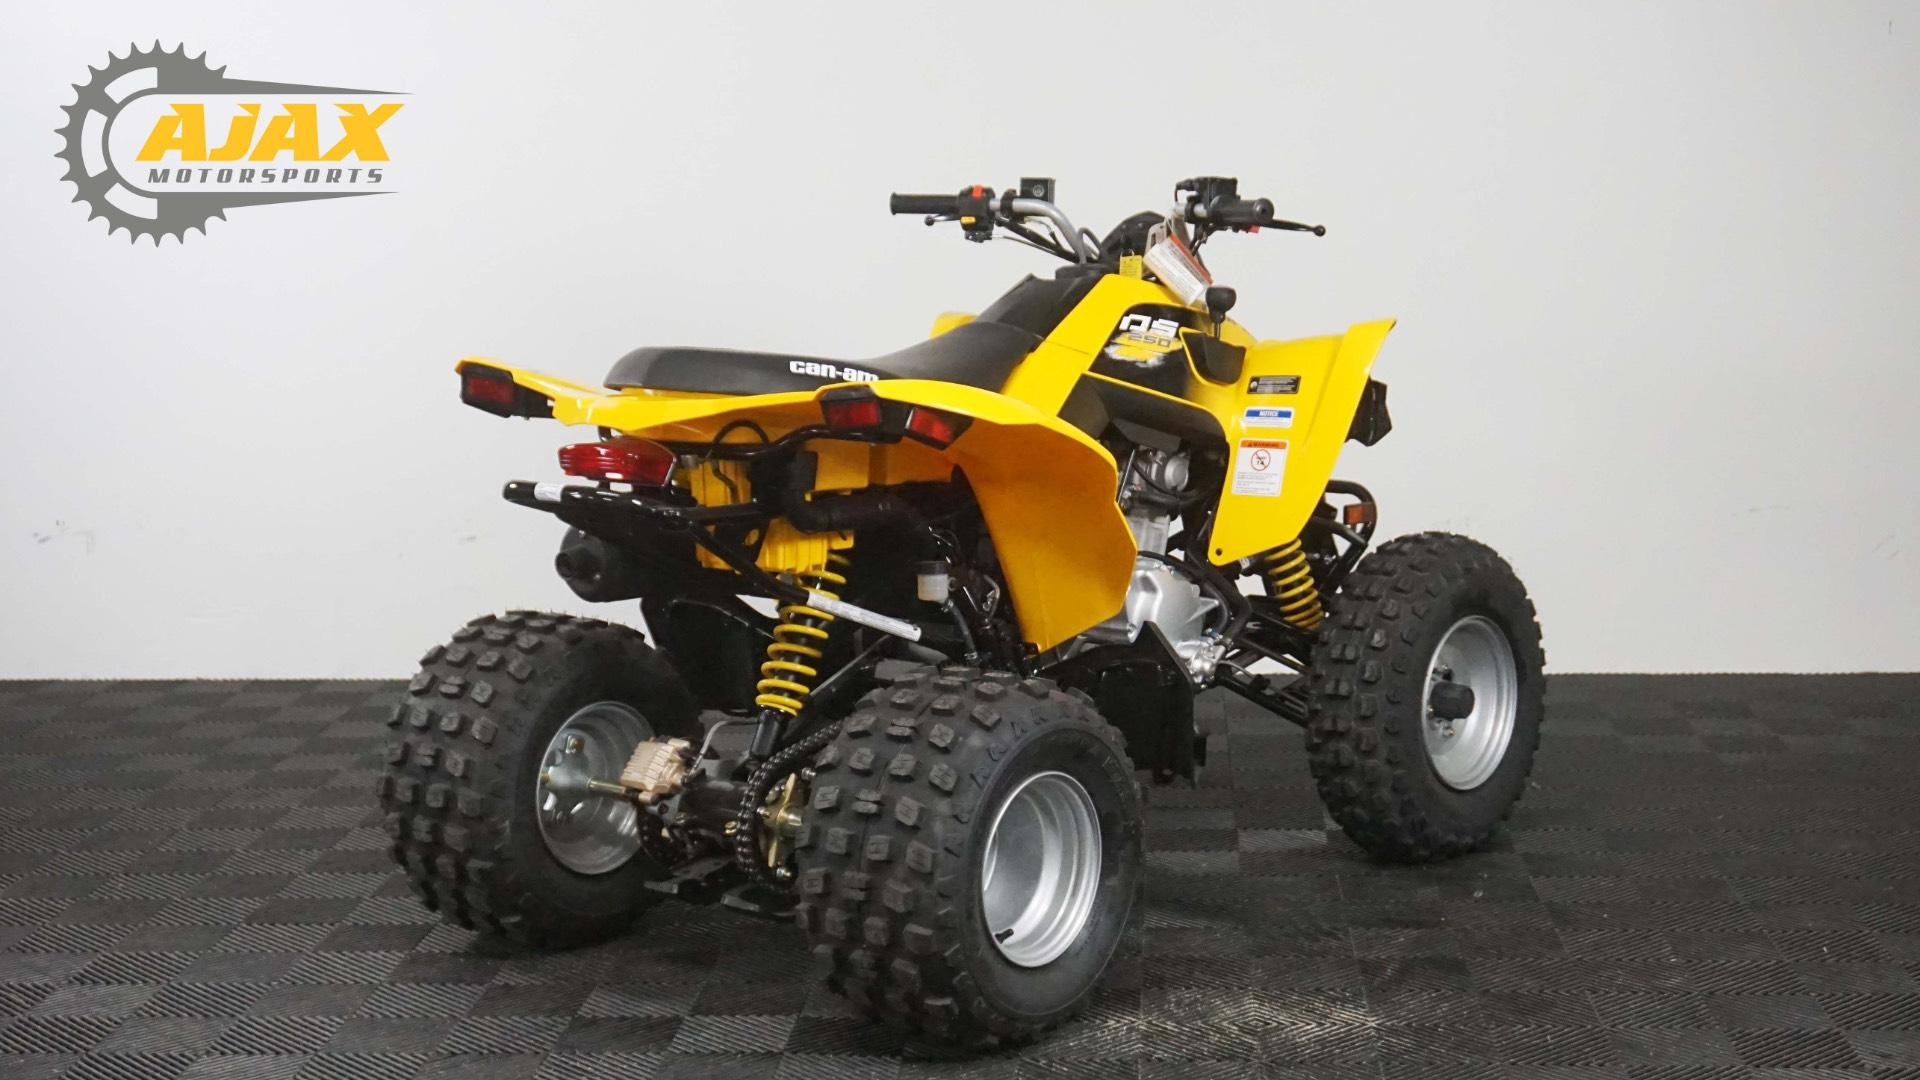 New 2018 Can-Am DS 250 ATVs in Oklahoma City, OK | Stock Number: 023607